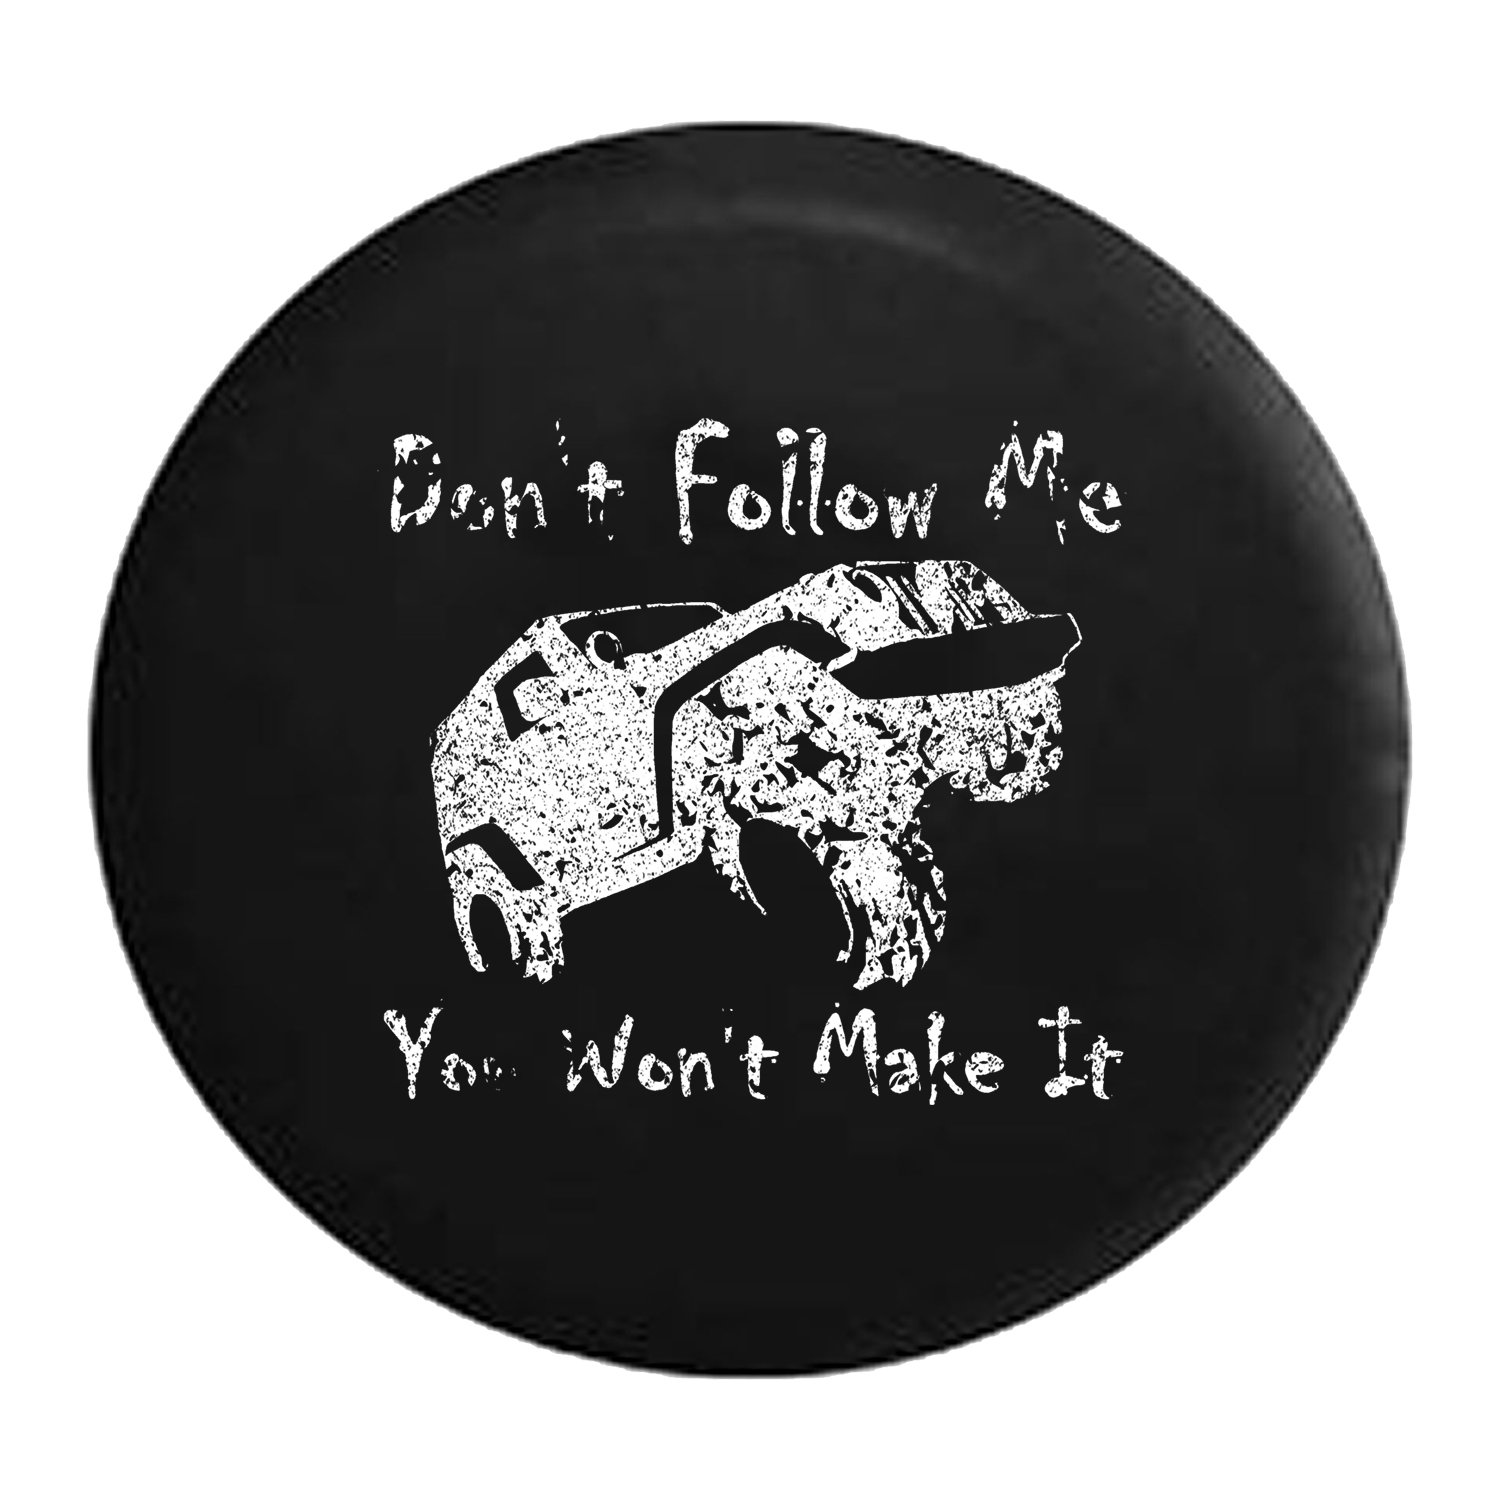 You Wont Make It Jeep Black 33 Inch Jeep Tire Cover for Spare Tire Dont Follow Me